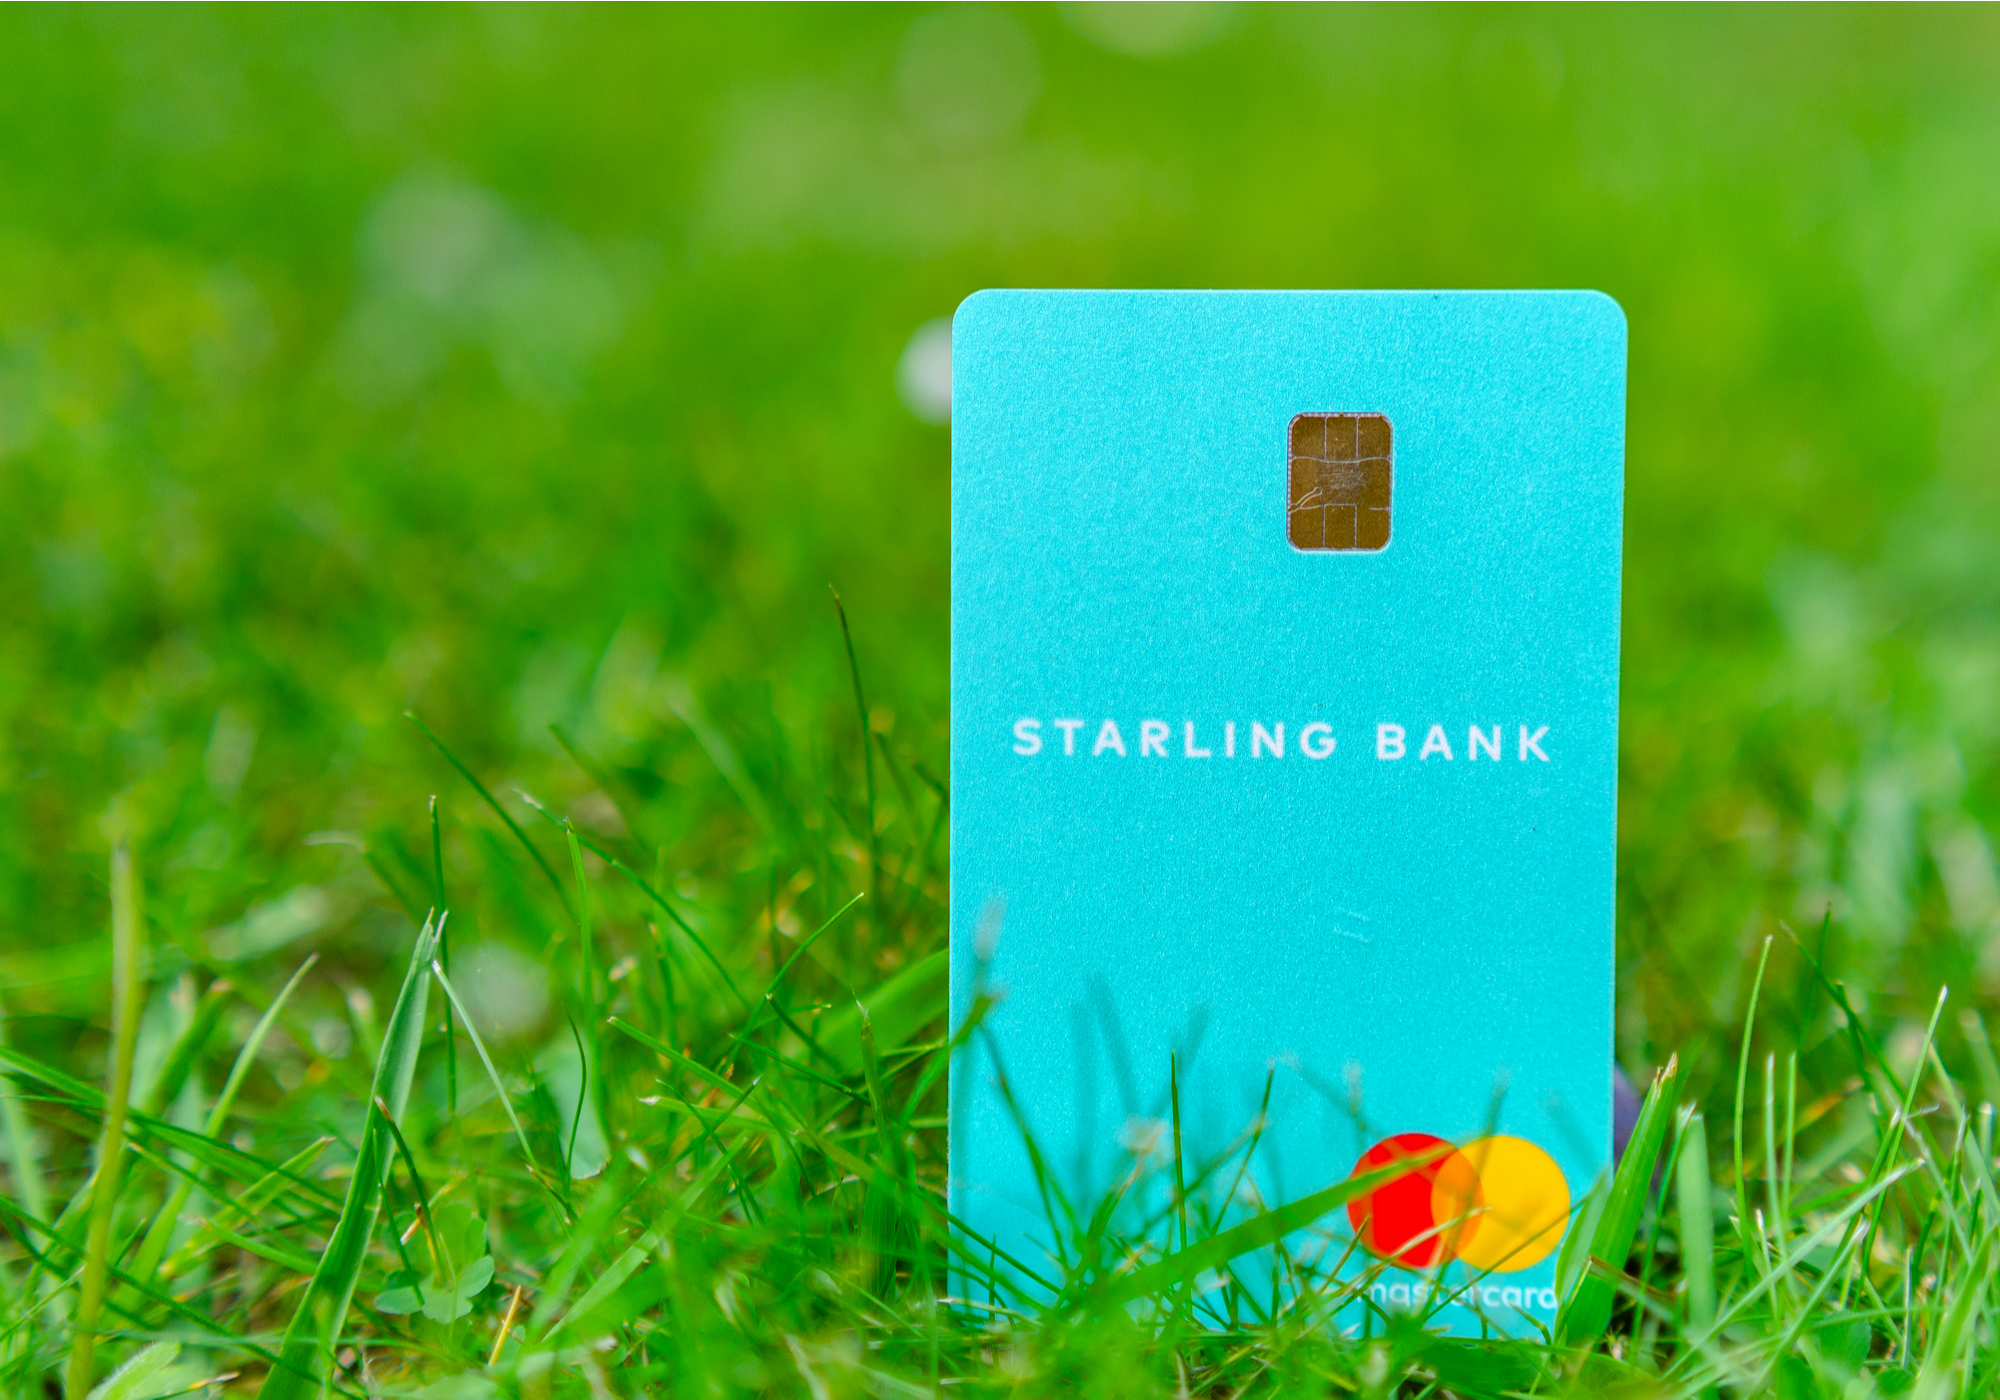 Starling Bank nets £60m funding boost for expansion plans